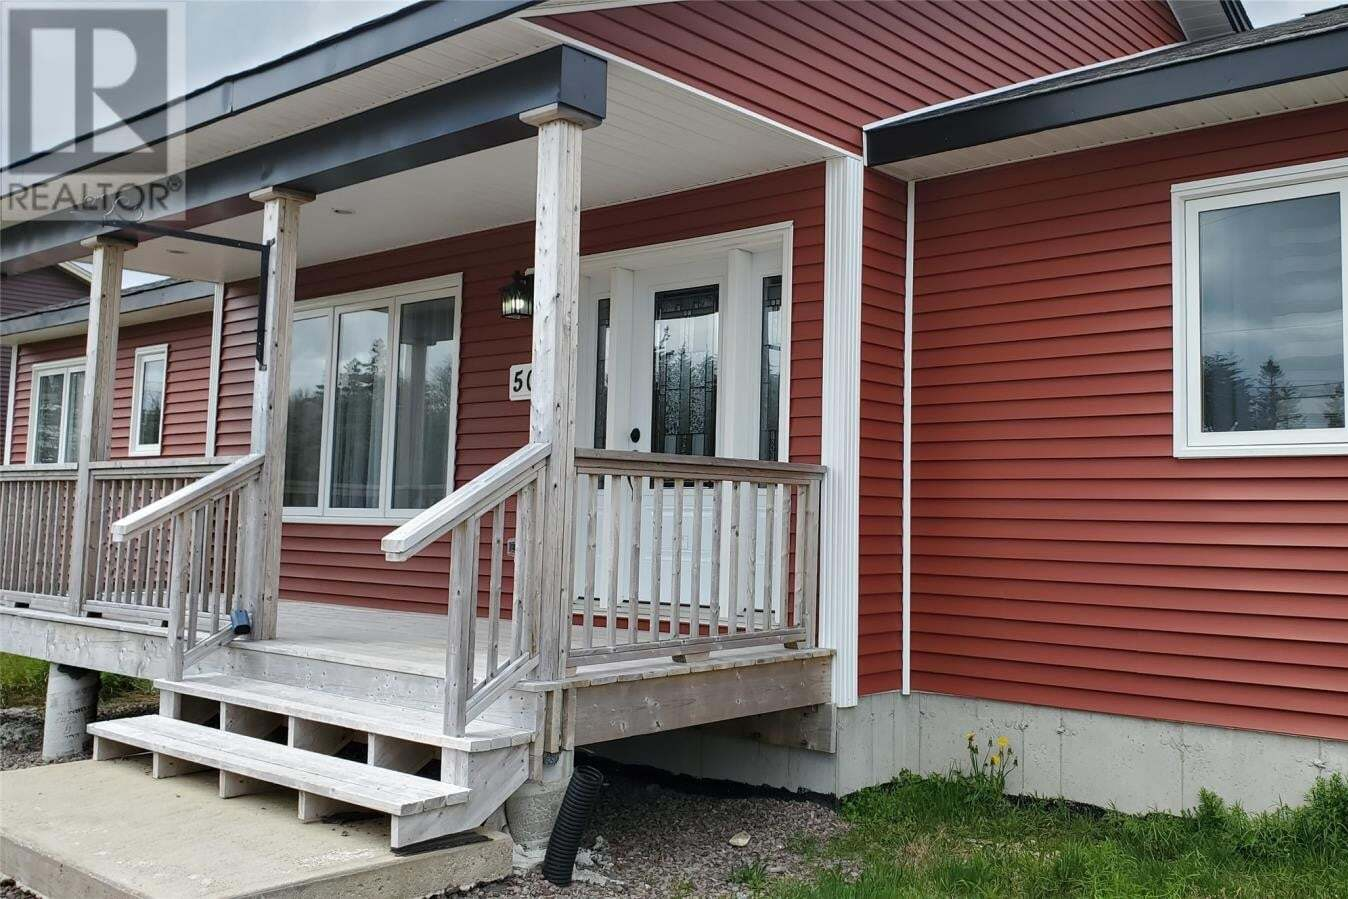 House for sale at 50 Stiles Cove Rd Pouch Cove Newfoundland - MLS: 1213624